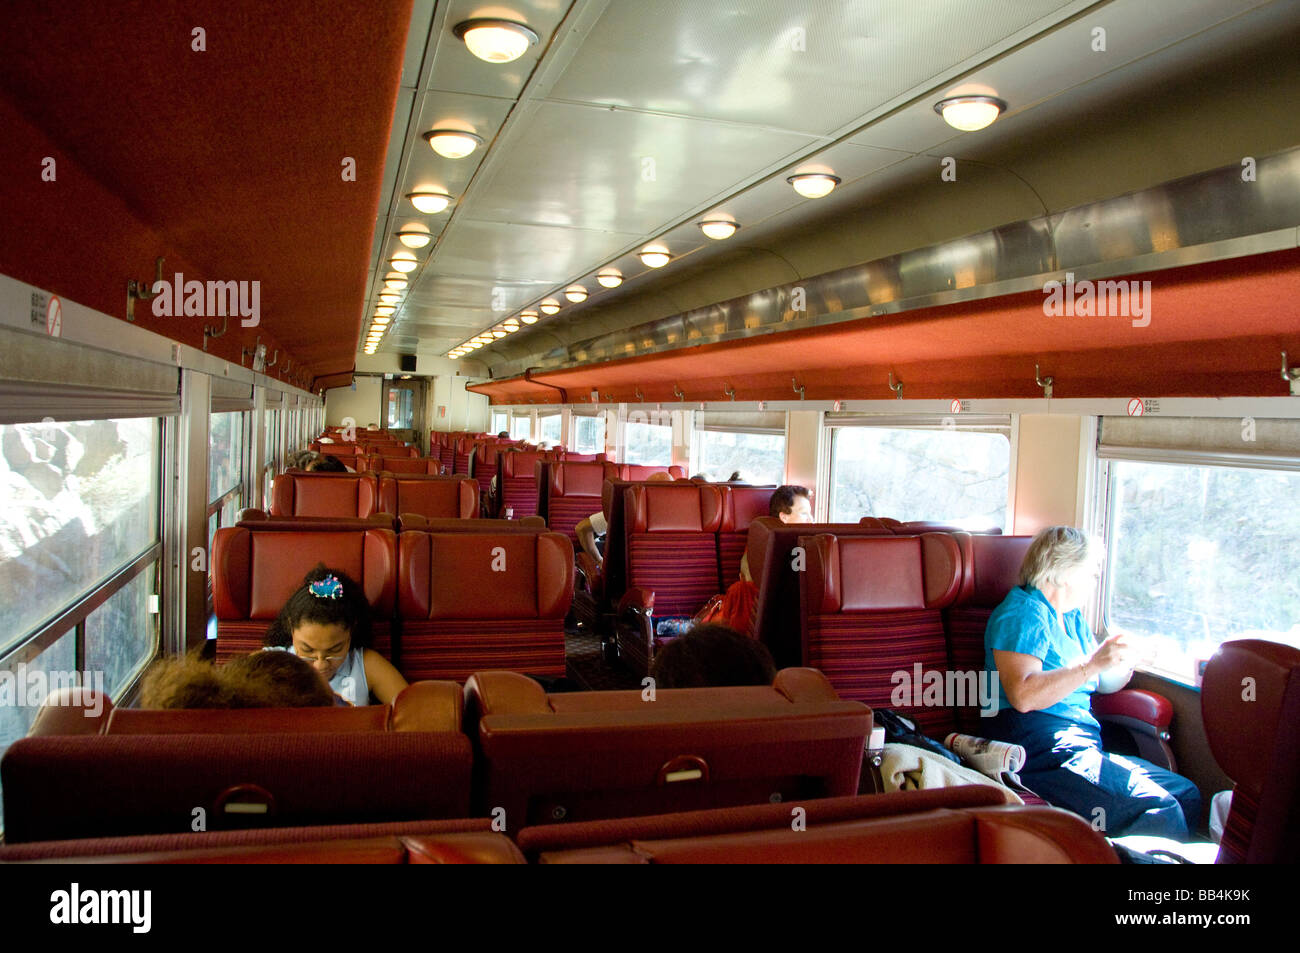 colorado canon city royal gorge railroad typical passenger car stock photo royalty free. Black Bedroom Furniture Sets. Home Design Ideas